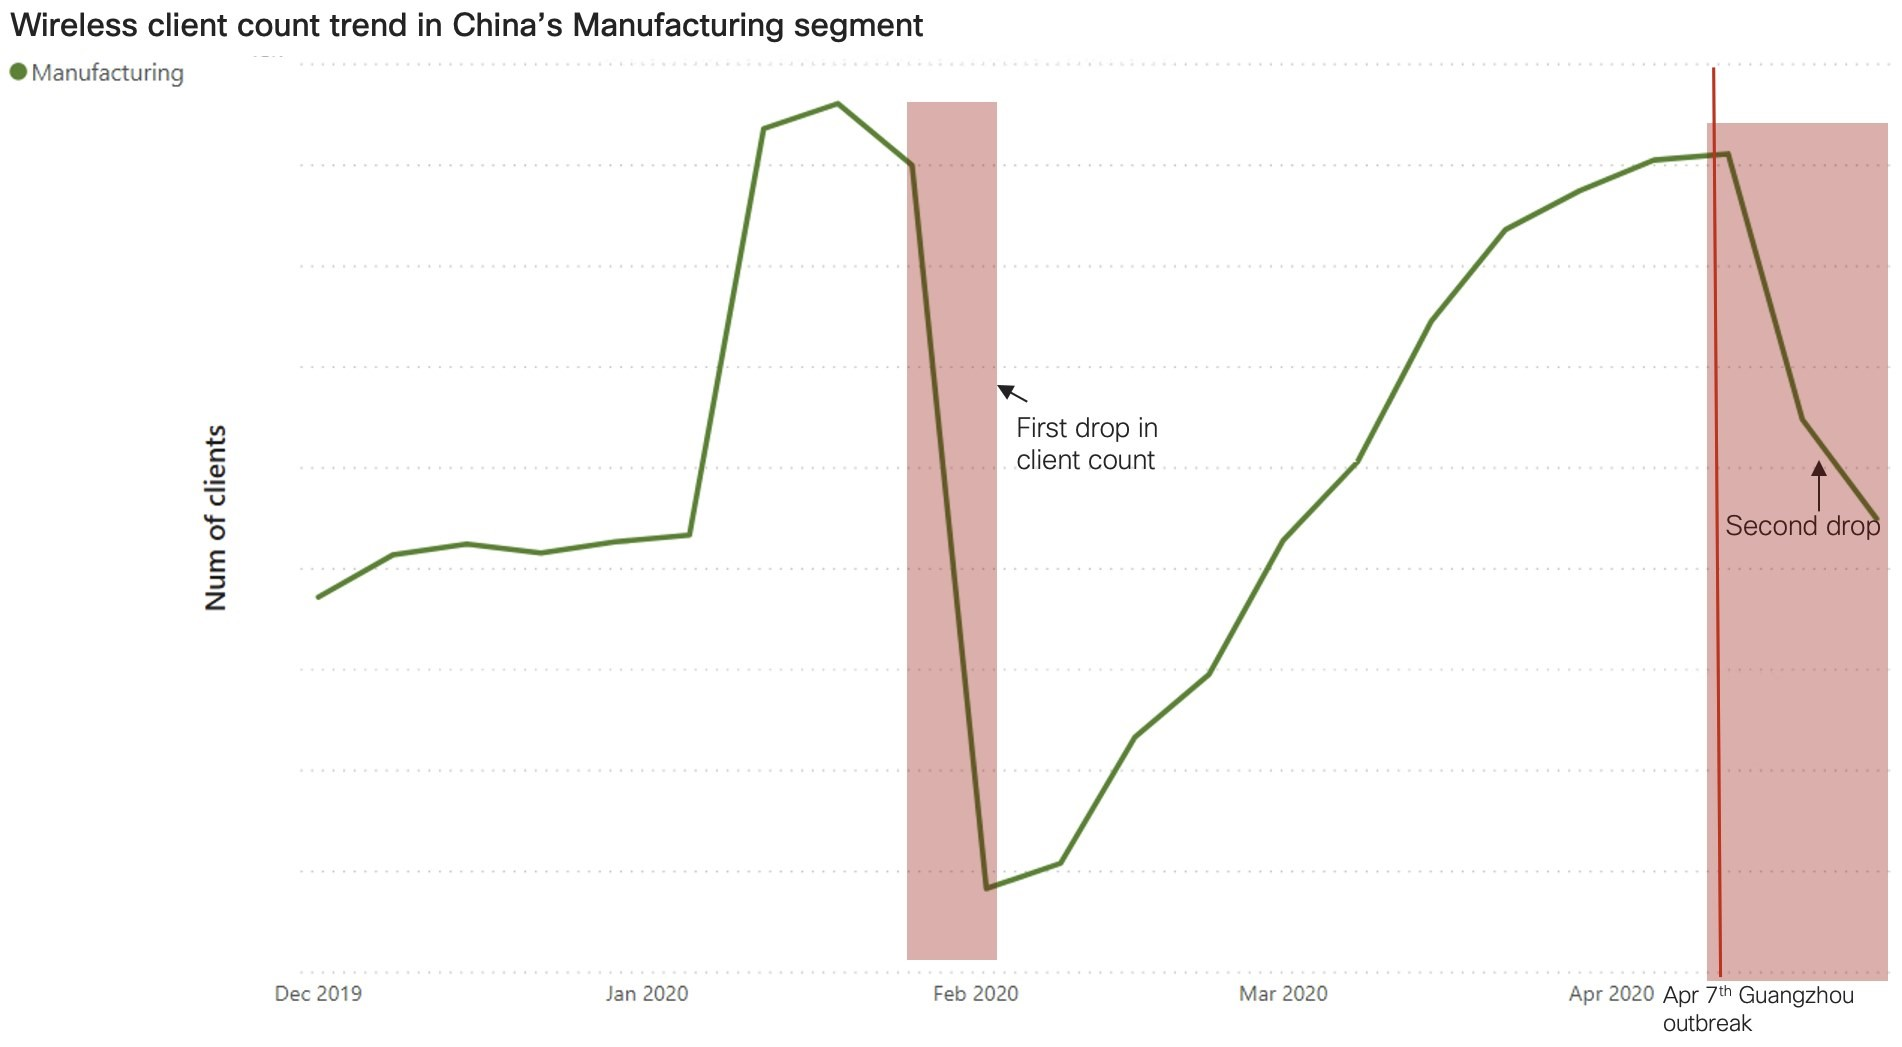 Wireless client count trend in China's Manufacturing segment